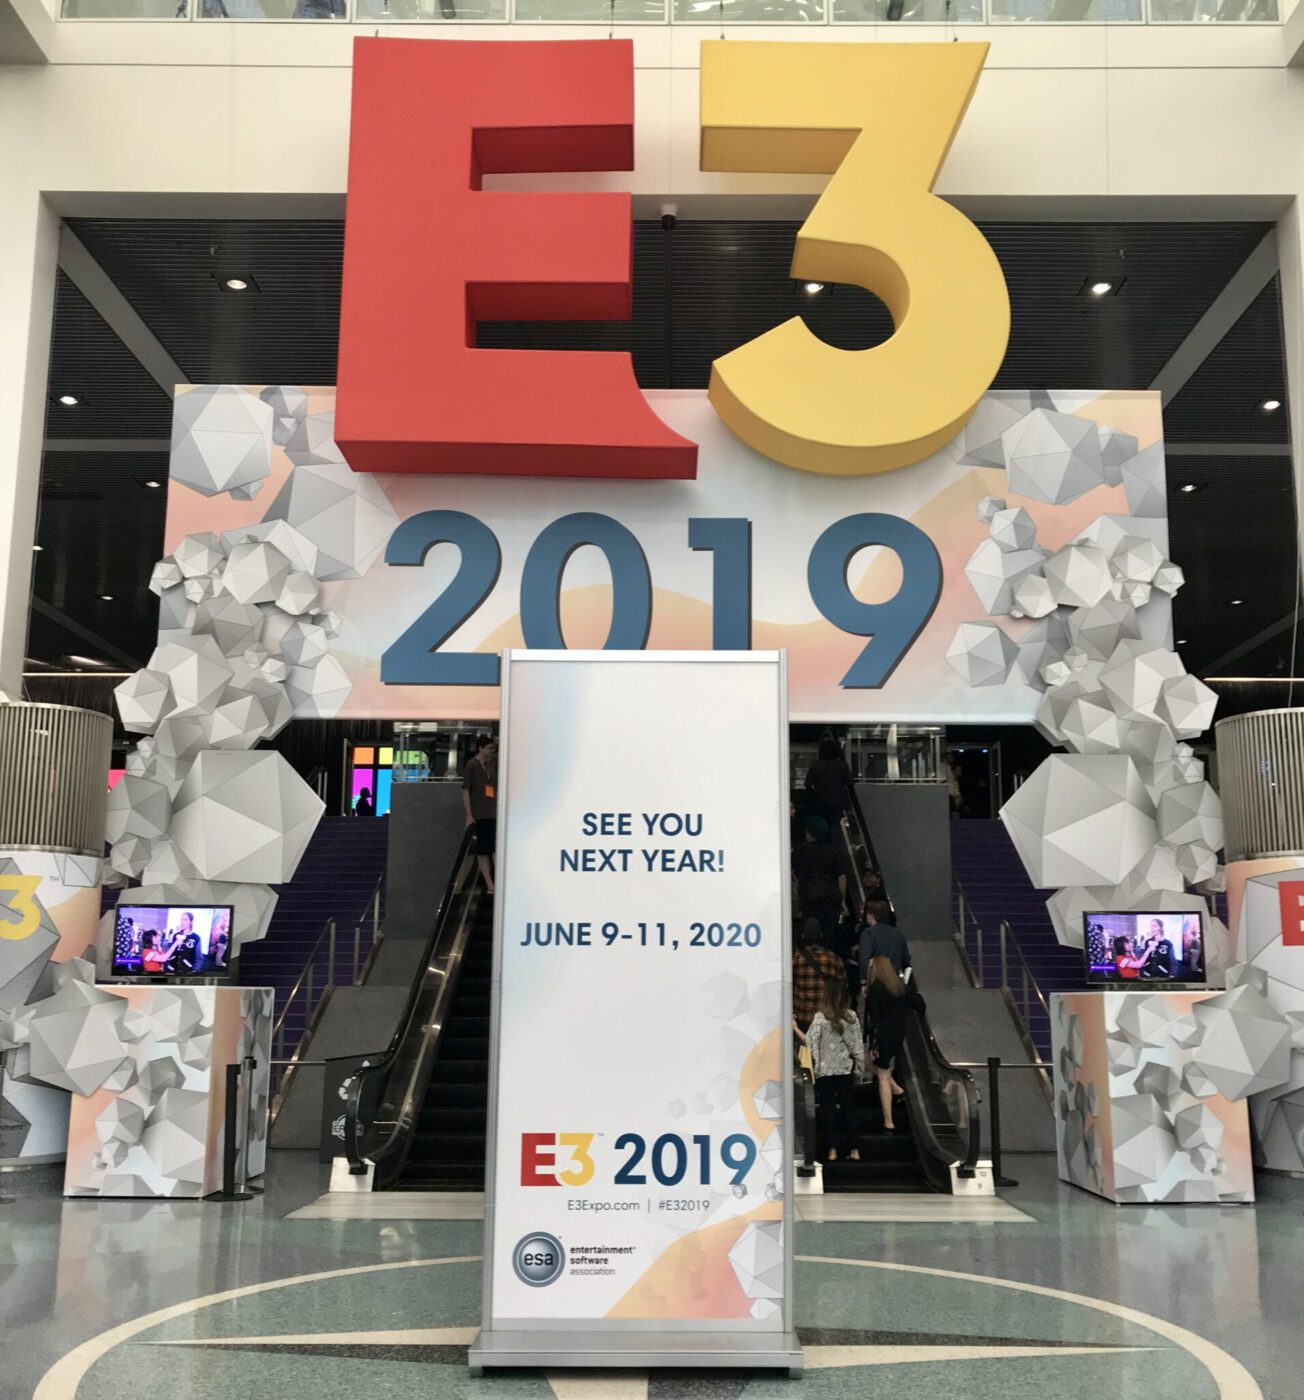 E3 2019 Sign Outside the Expo